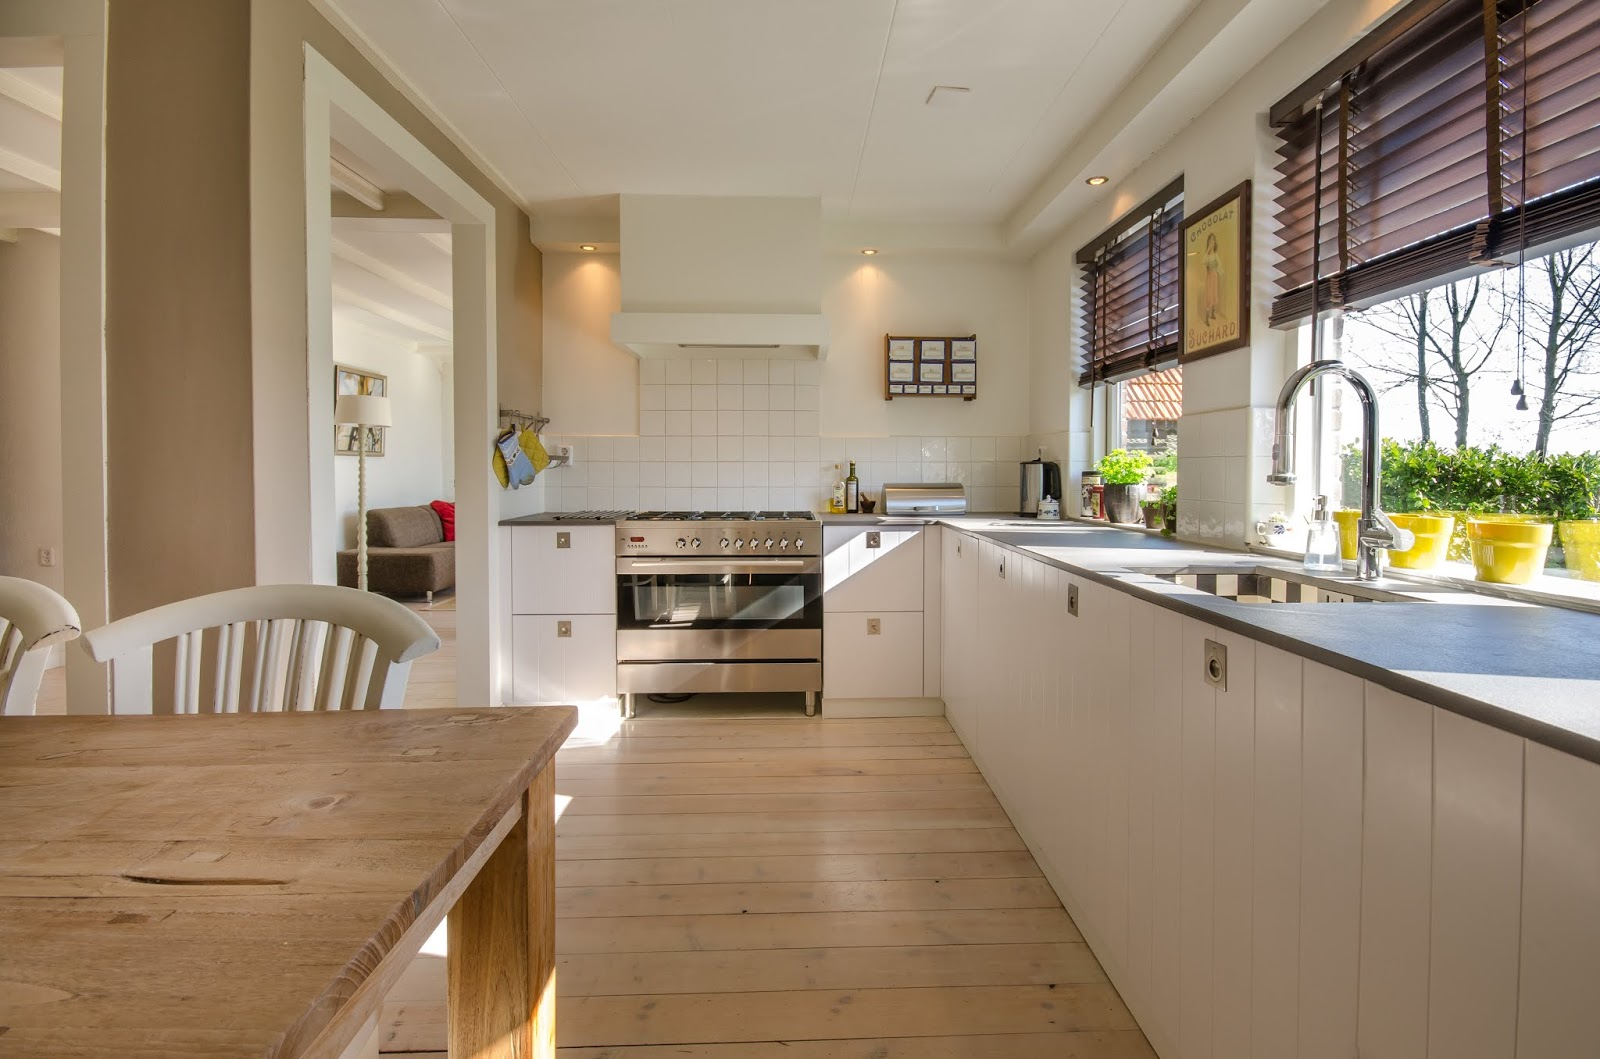 8 Interesting Facts Related To Laminate Flooring To Become Mum